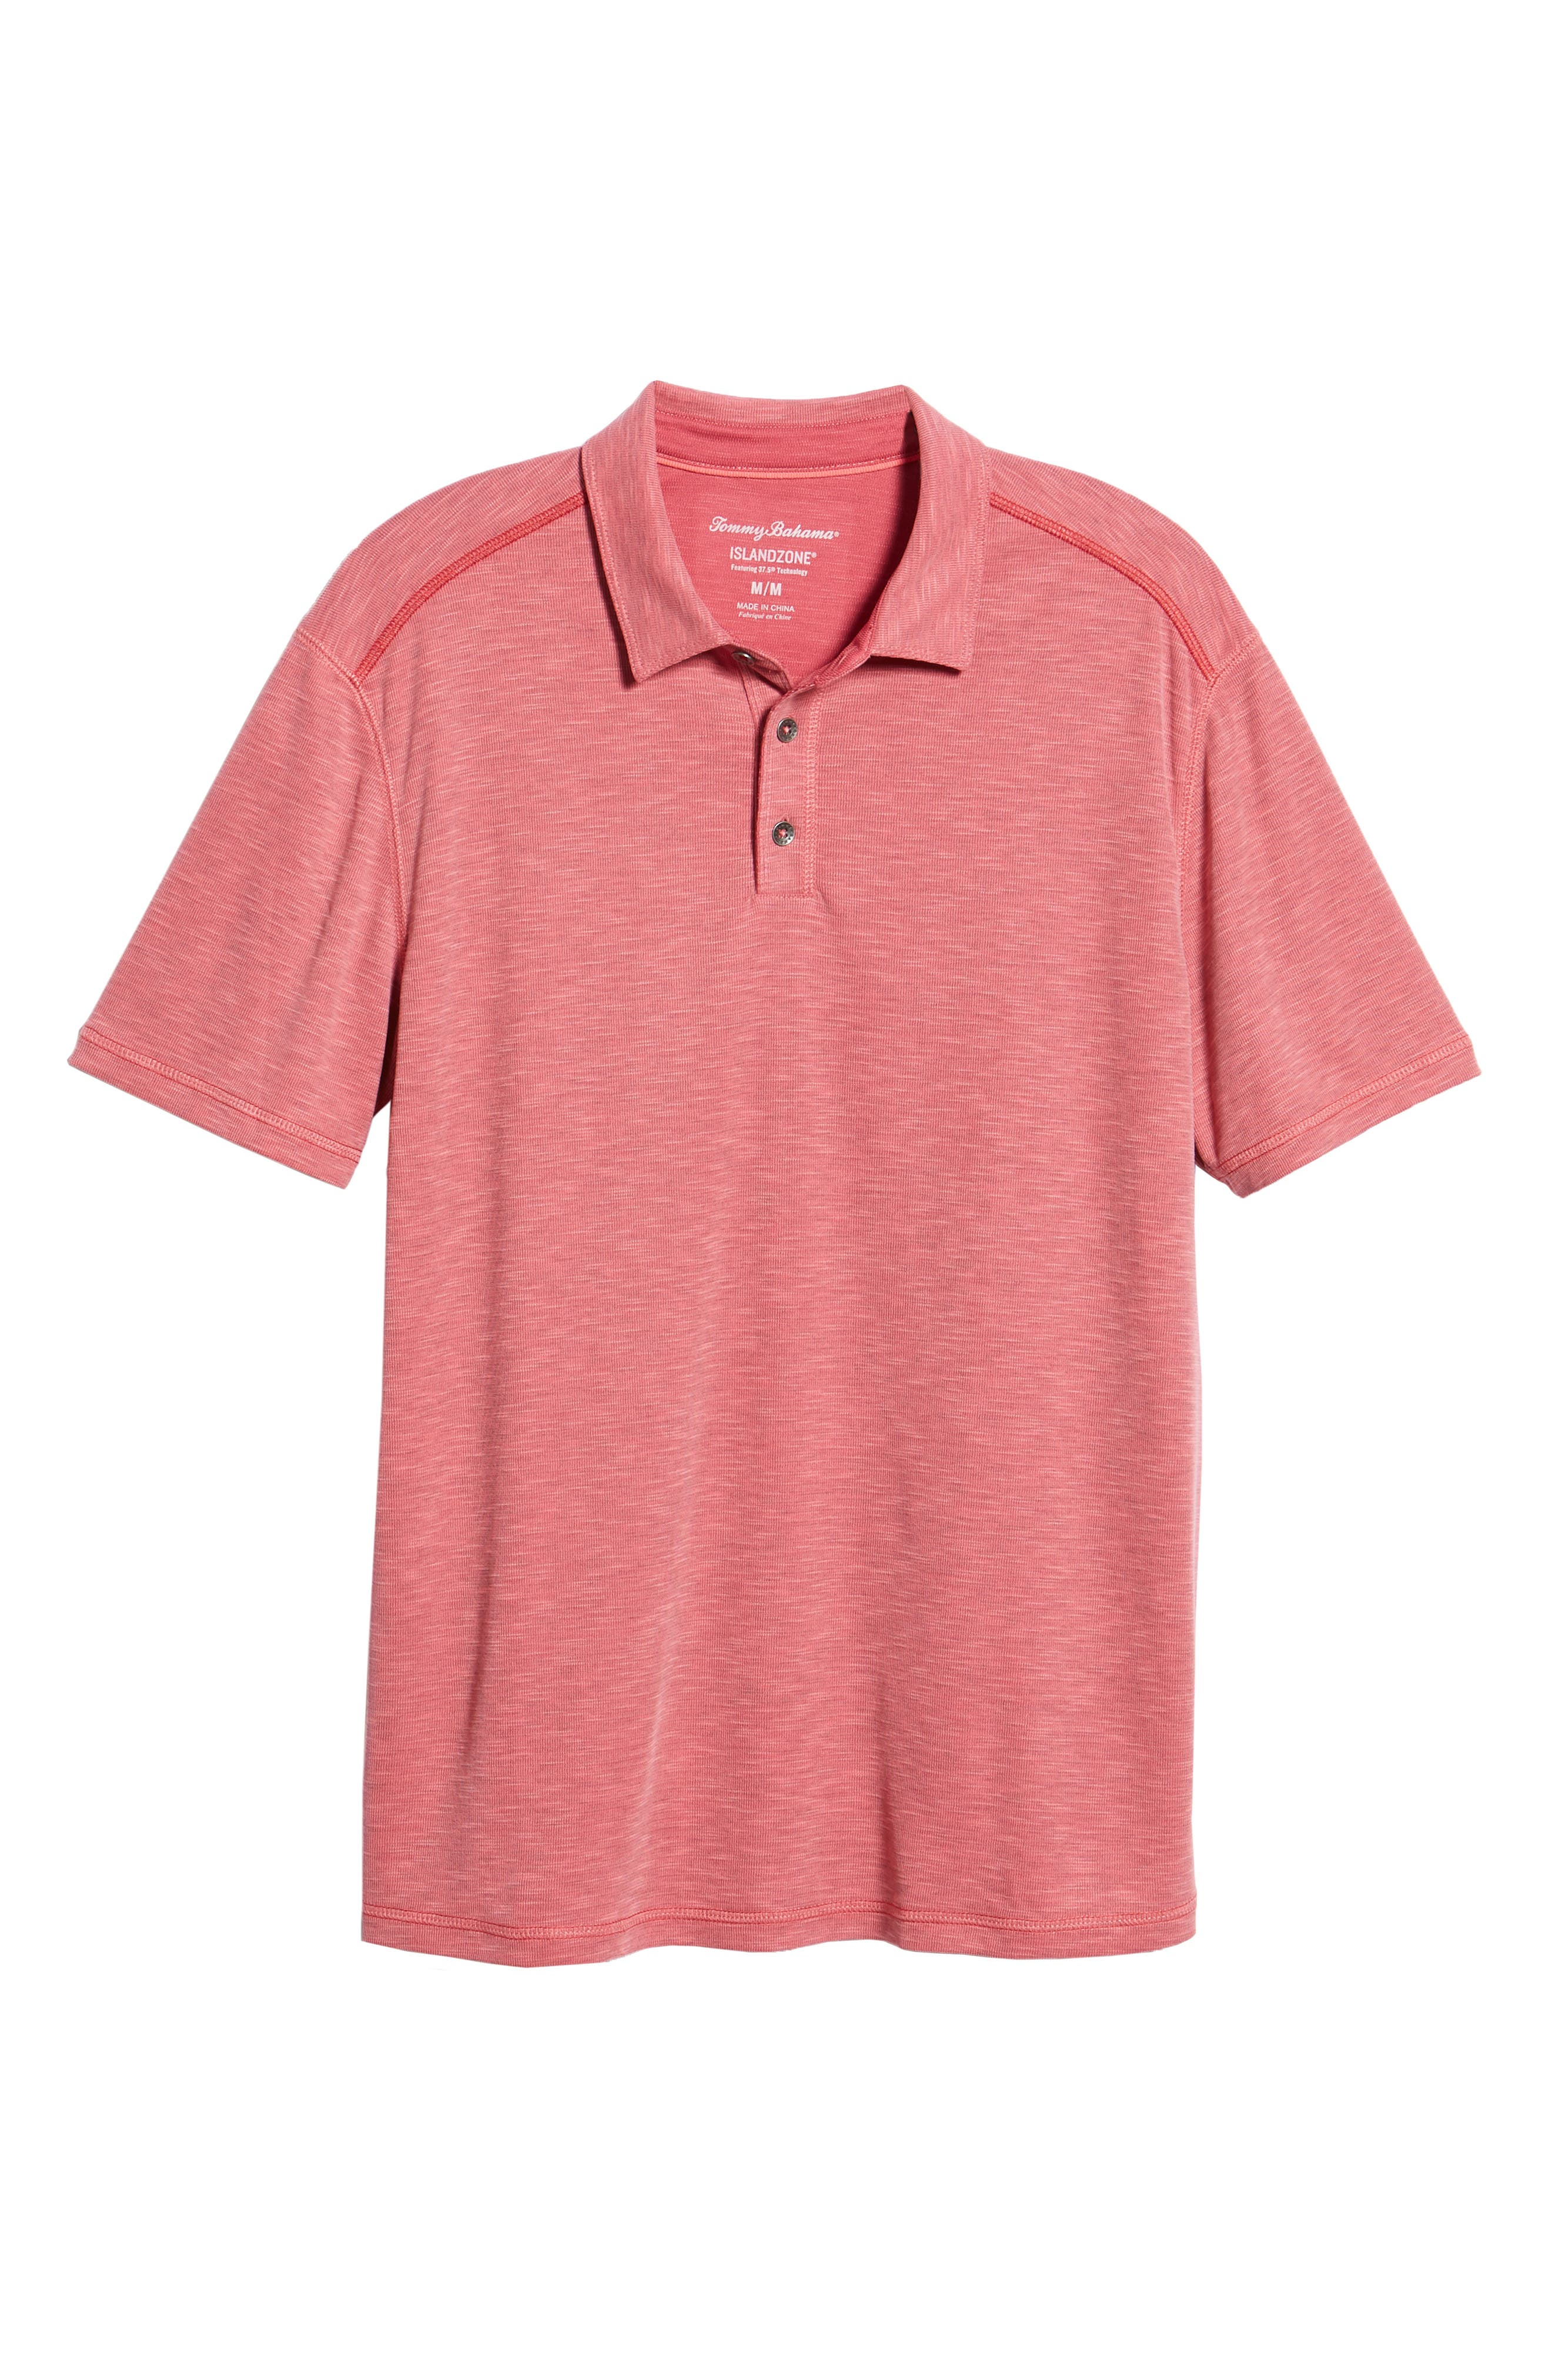 7aafc574 Men's Tommy Bahama Polo Shirts | Nordstrom